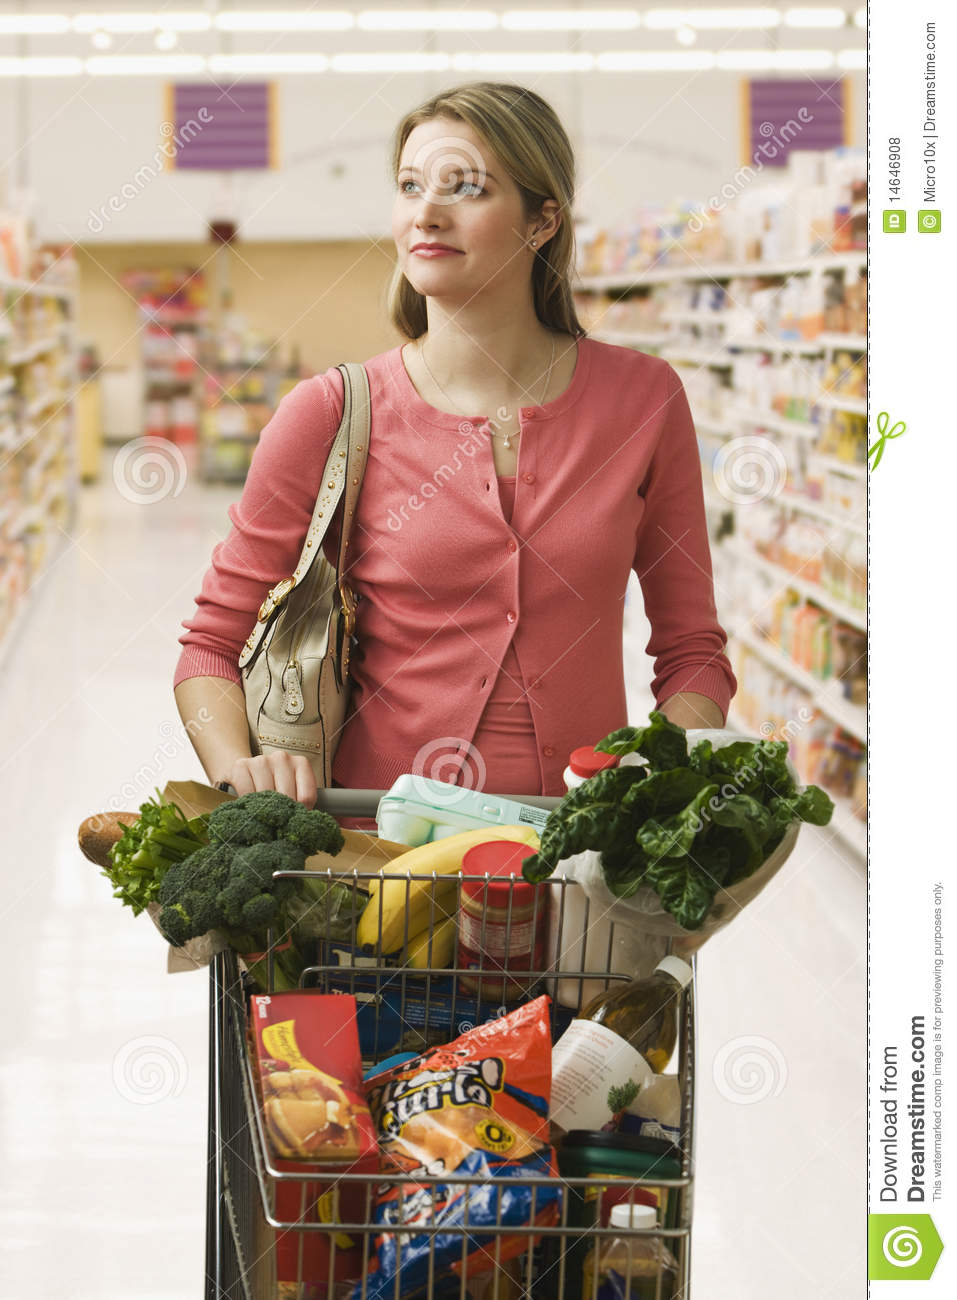 Buying groceries in bulk